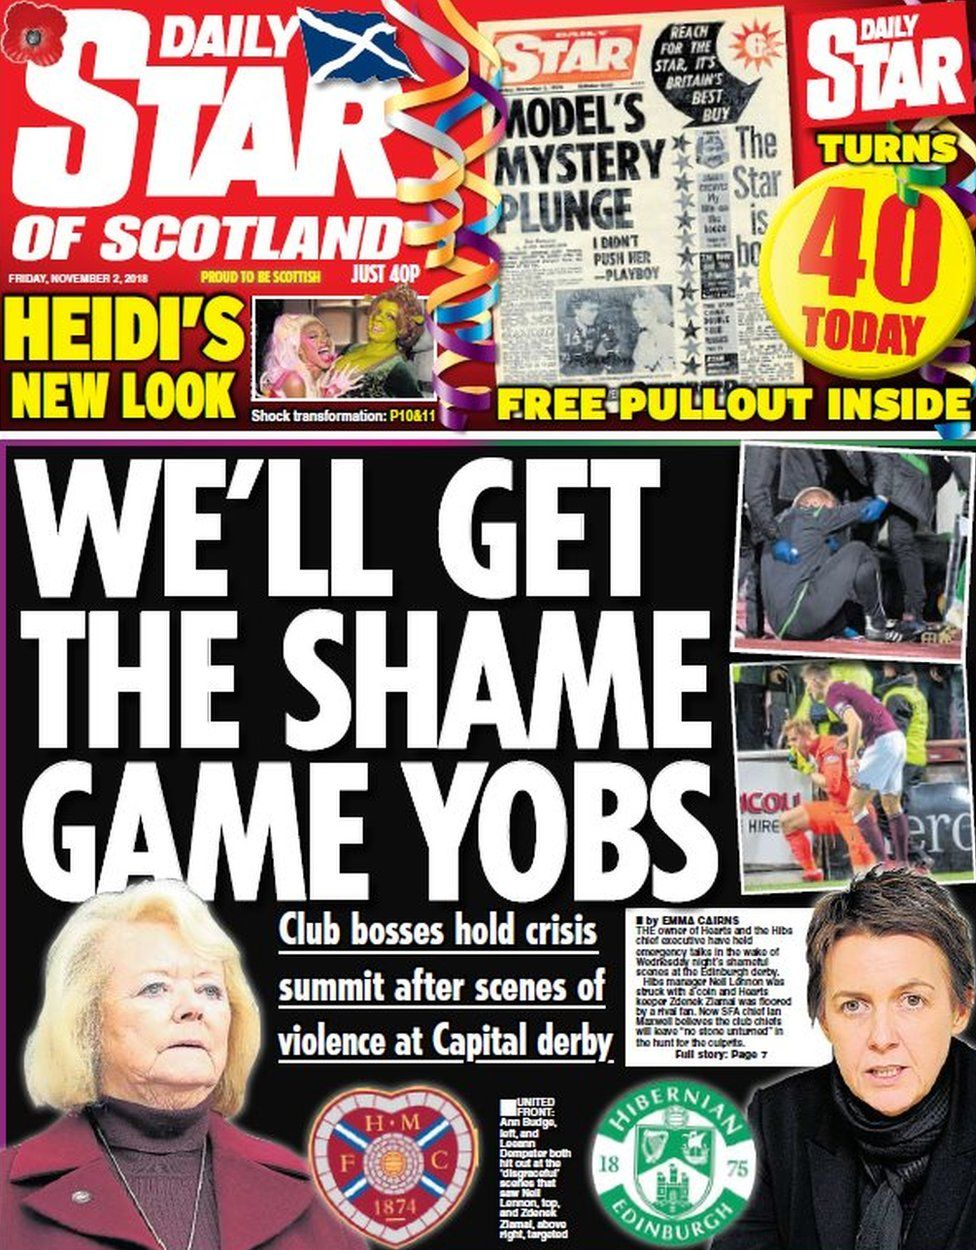 Daily Star of Scotland